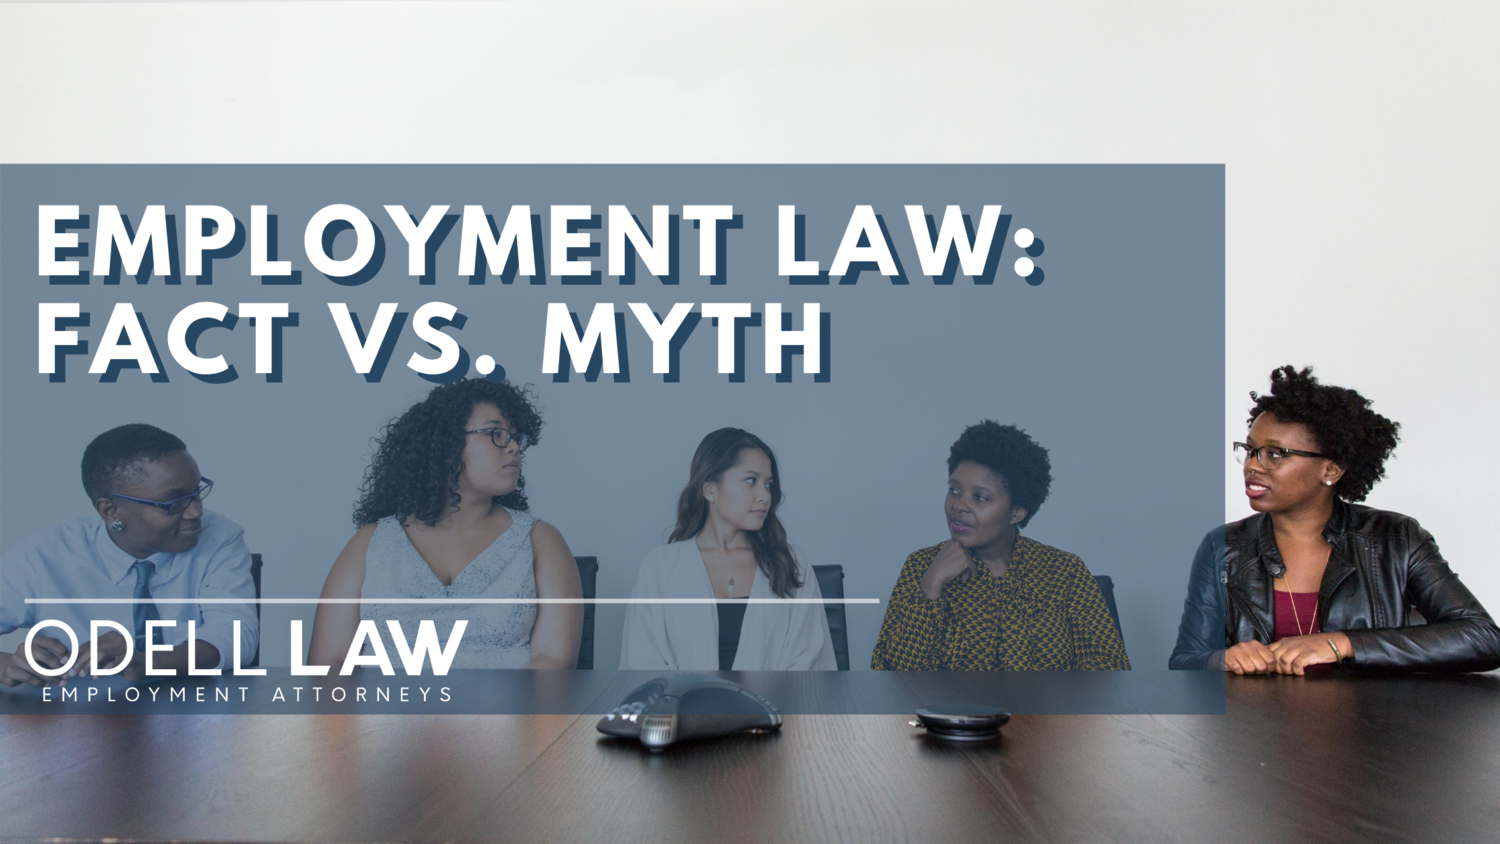 employment law fact vs myth